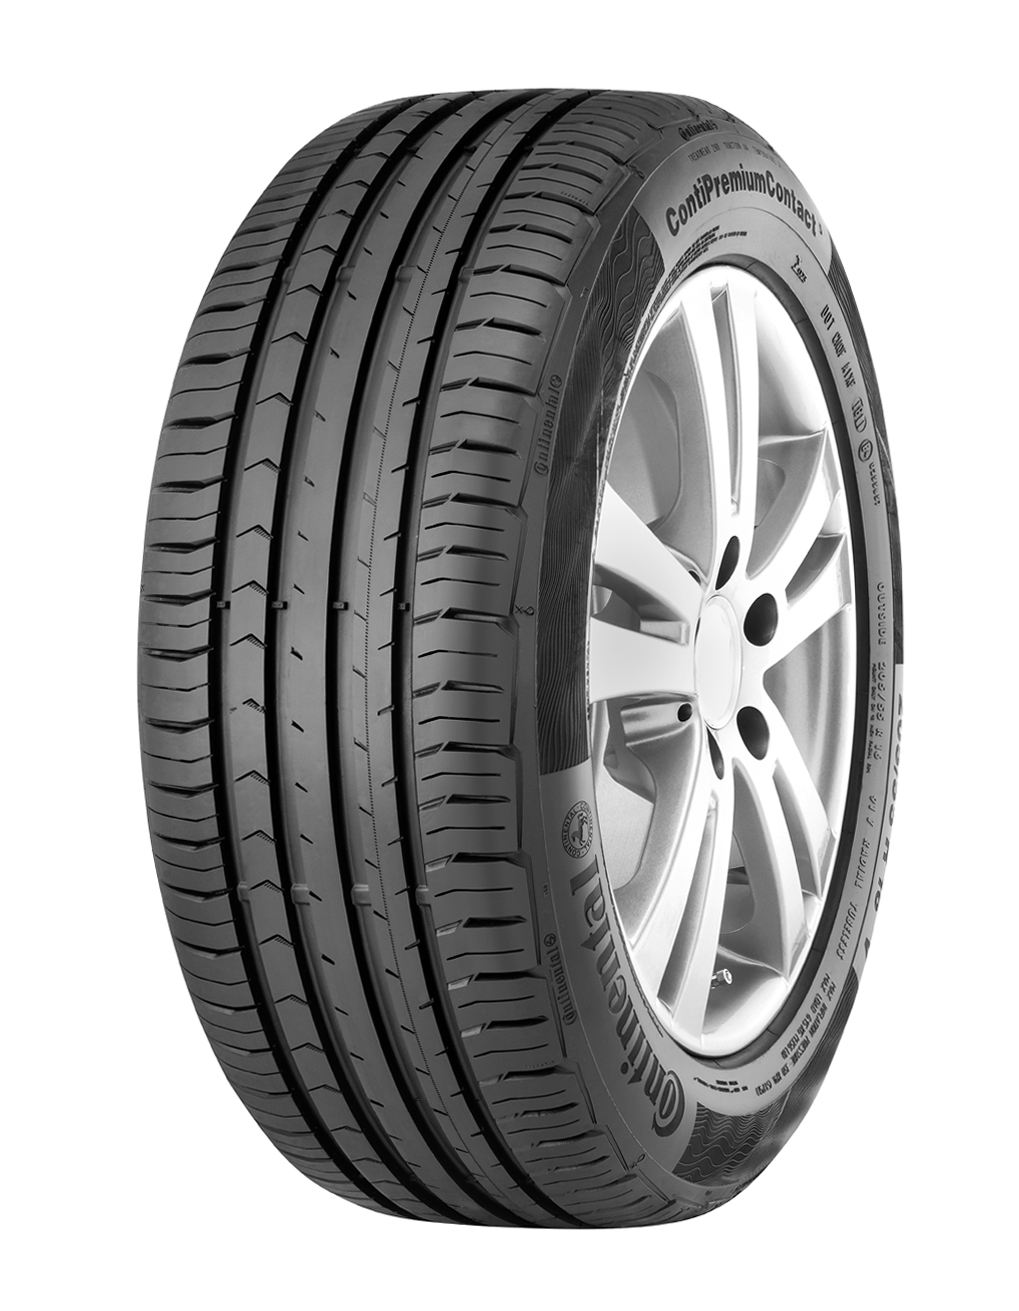 1x Continental ContiPremiumContact 5 195/65 R15 91